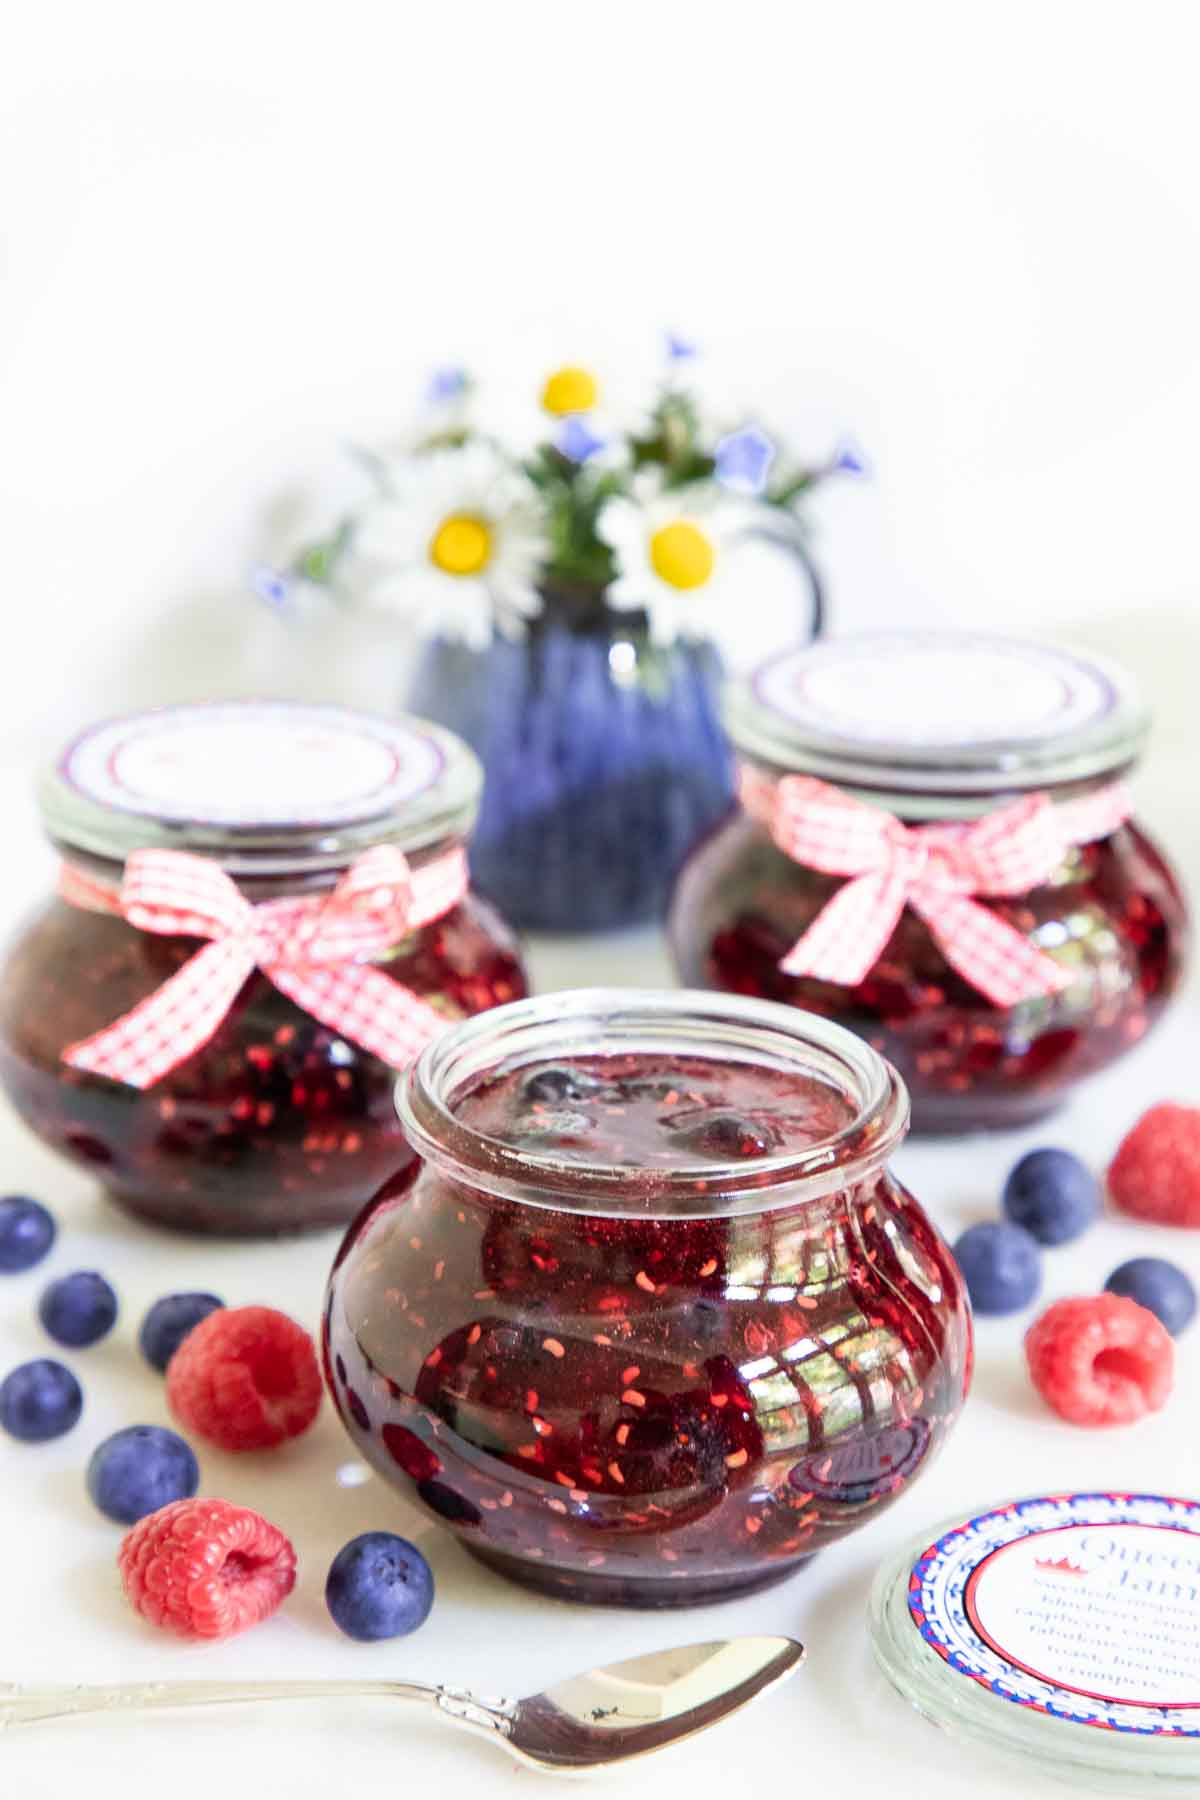 Vertical photo of a group of jars of Queen's Jam (Raspberry Blueberry Jam) with fresh flowers in the background and fresh berries in the foreground.